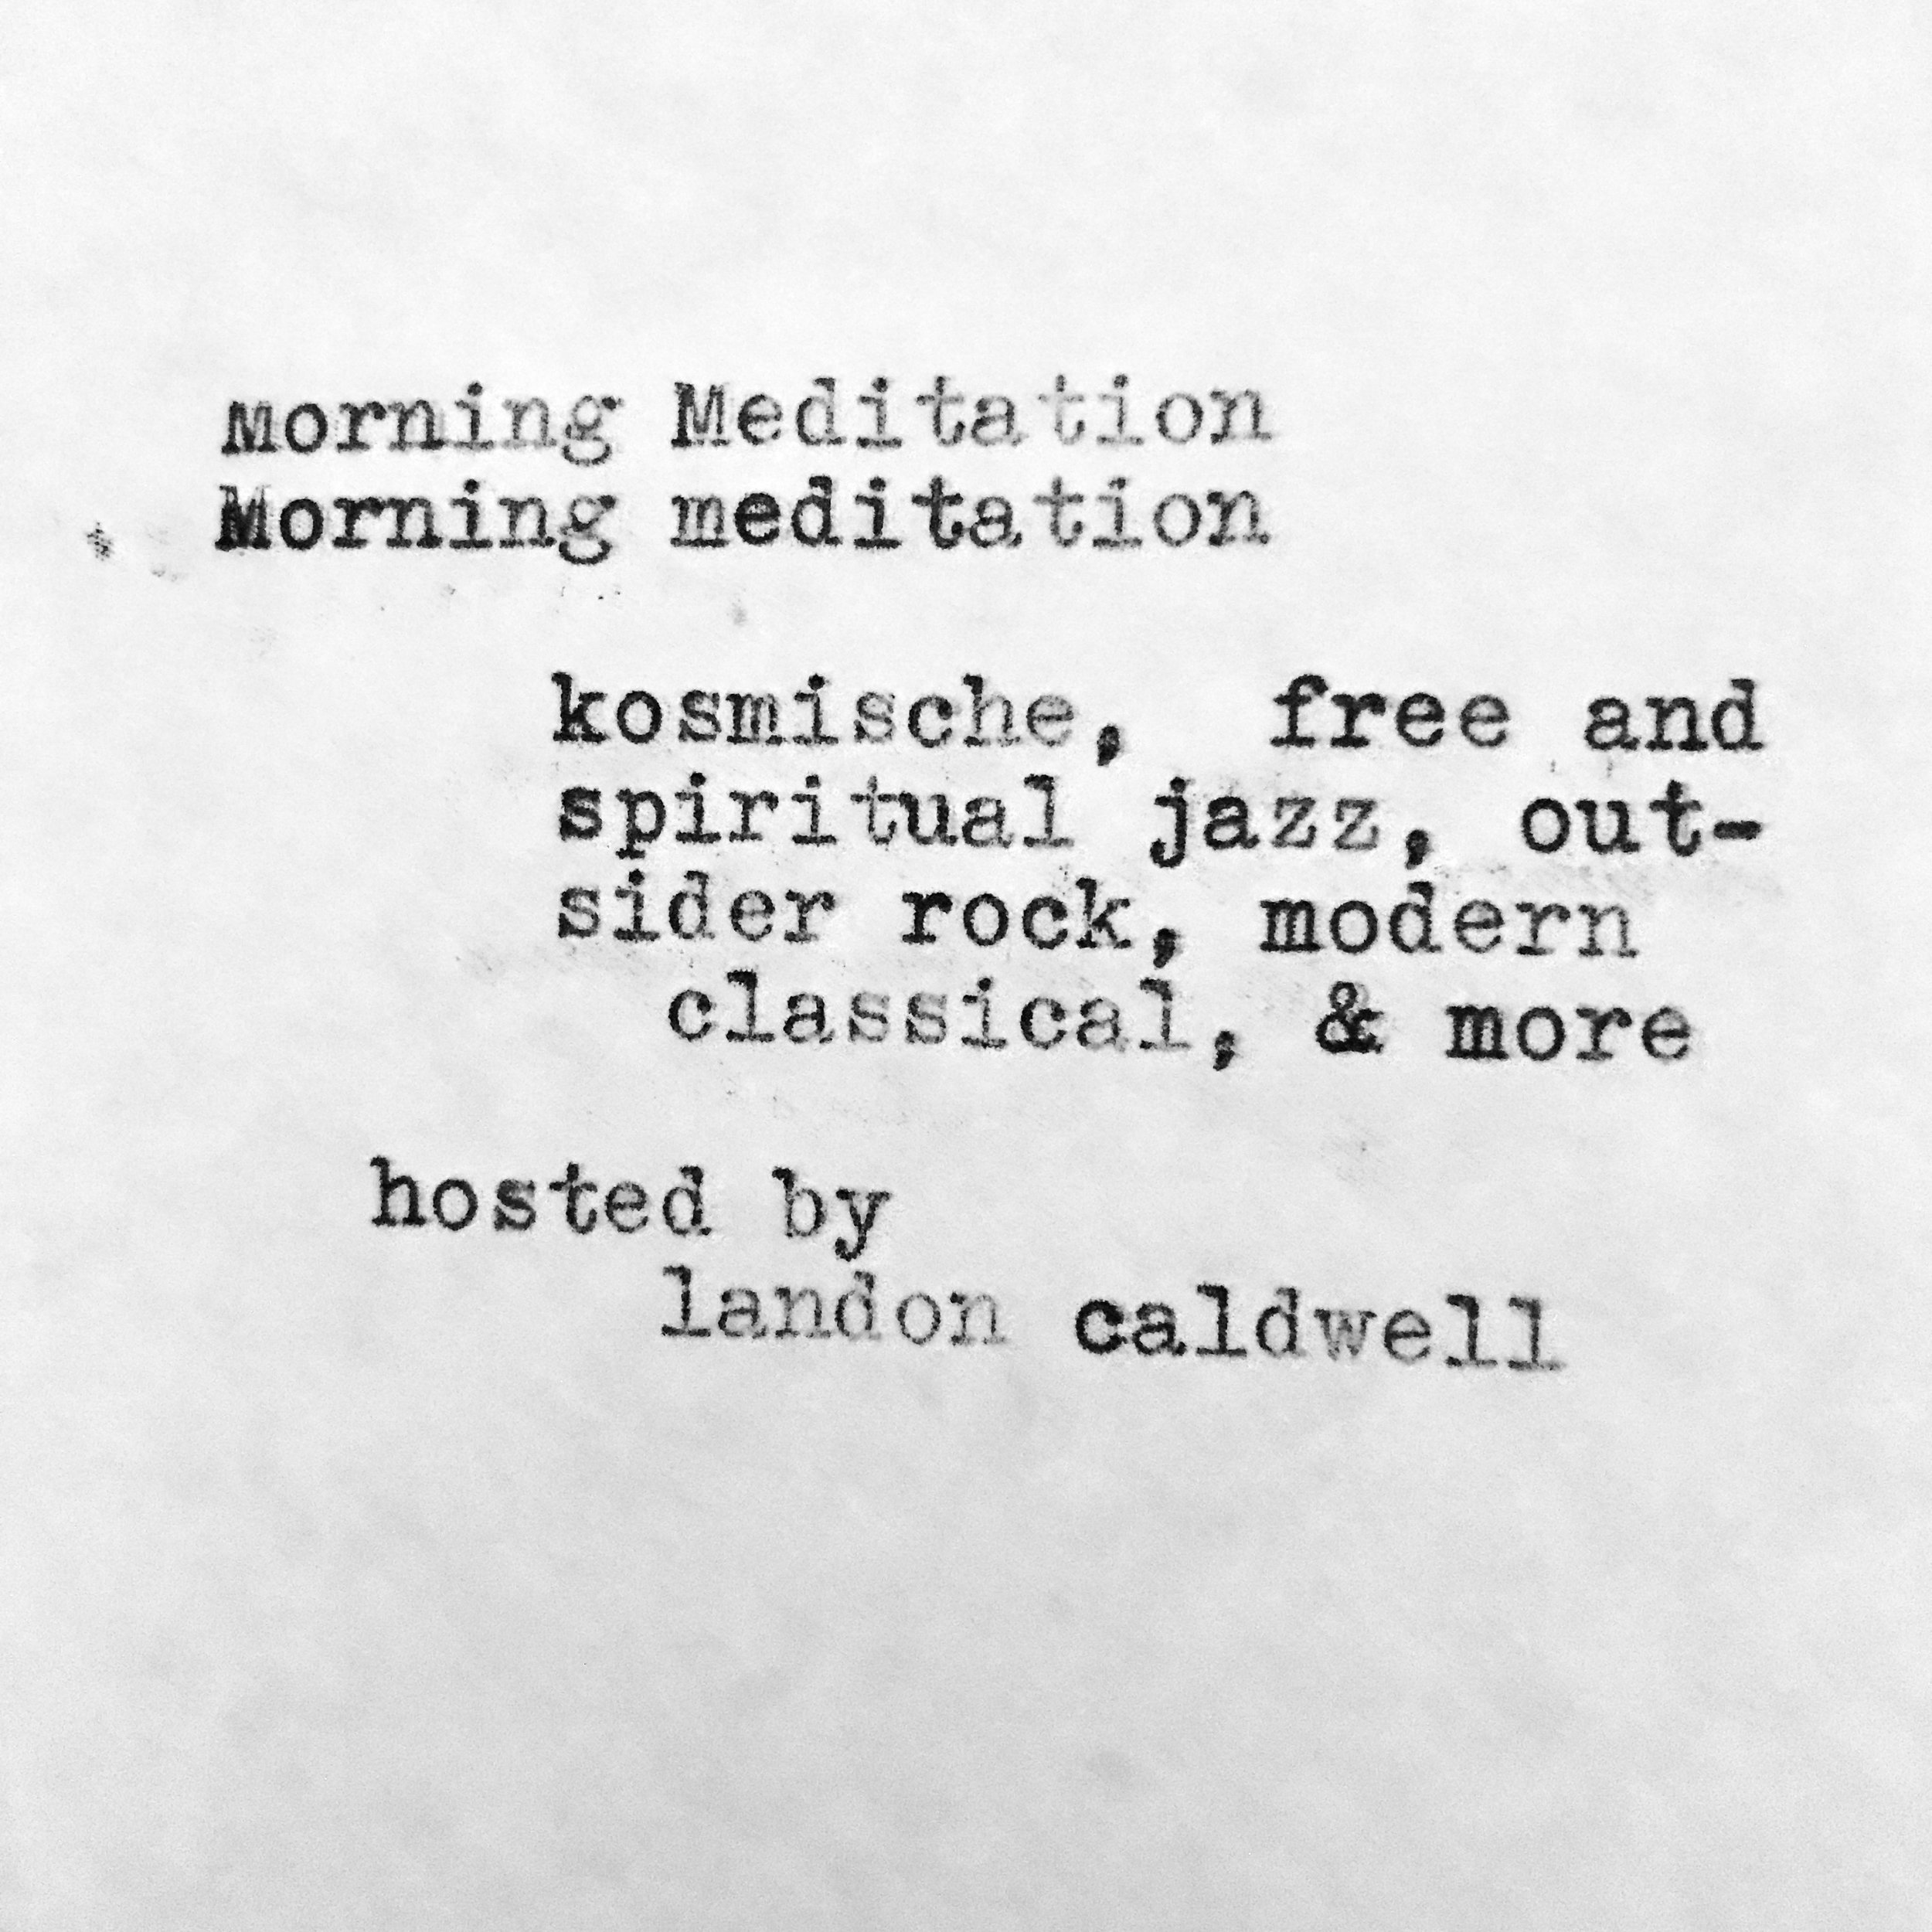 Morning Meditation by Landon Caldwell - Tues at 10:30am + Sat at 8amKosmische, free and spiritual jazz, outsider rock, modern classical, and more.